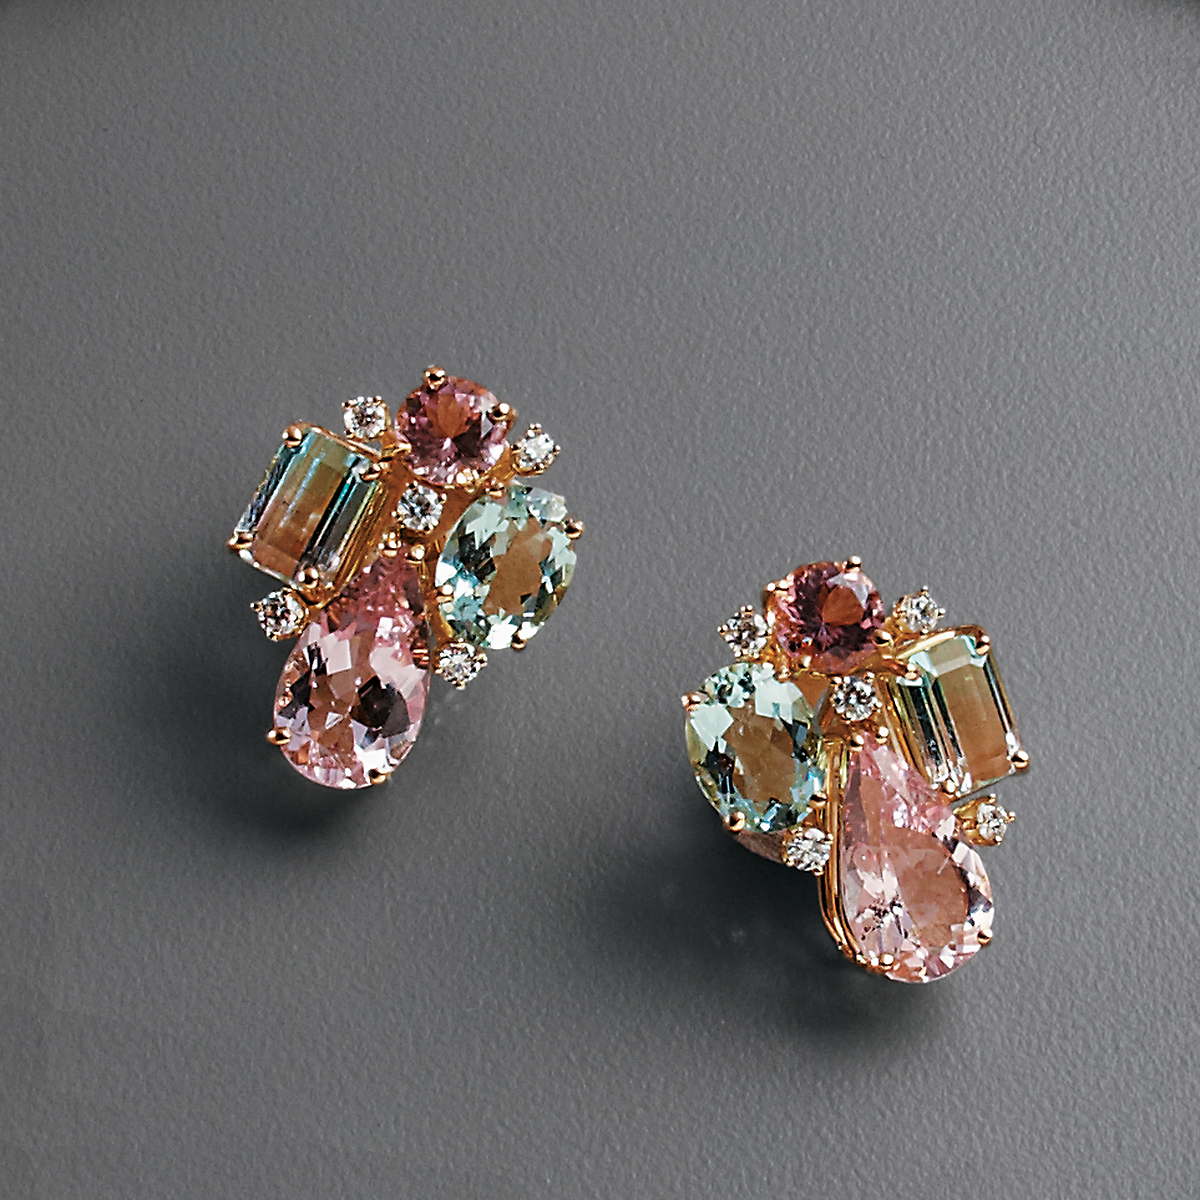 Gump's Pastel Beryl & Tourmaline Earrings